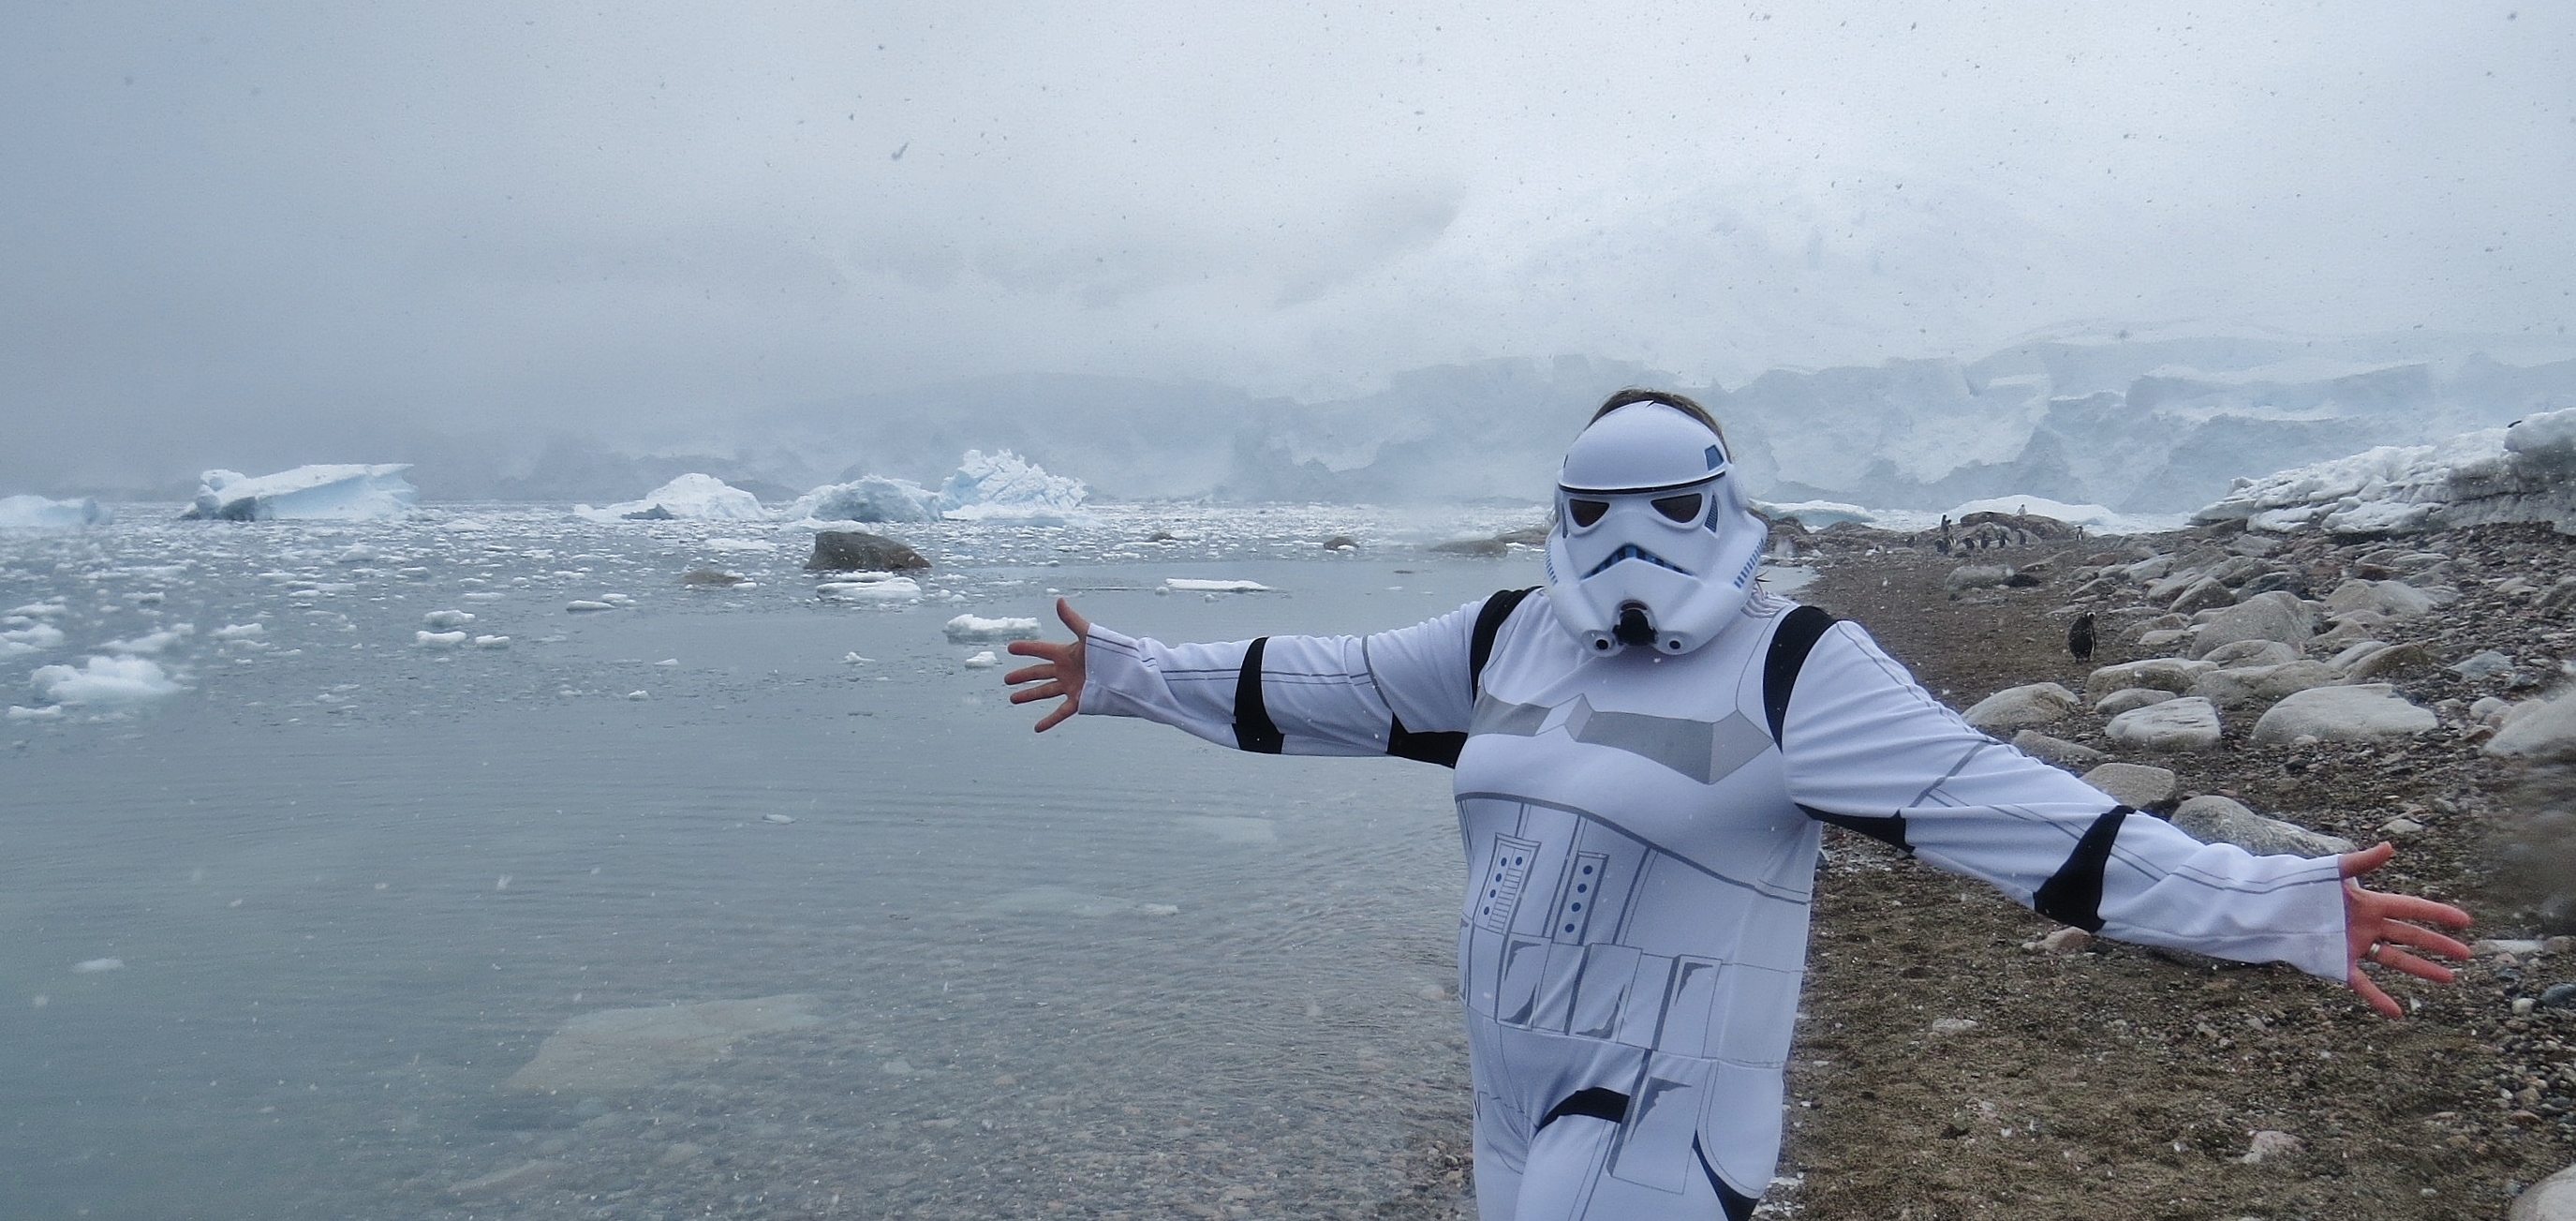 The storm trooper of Antarctica